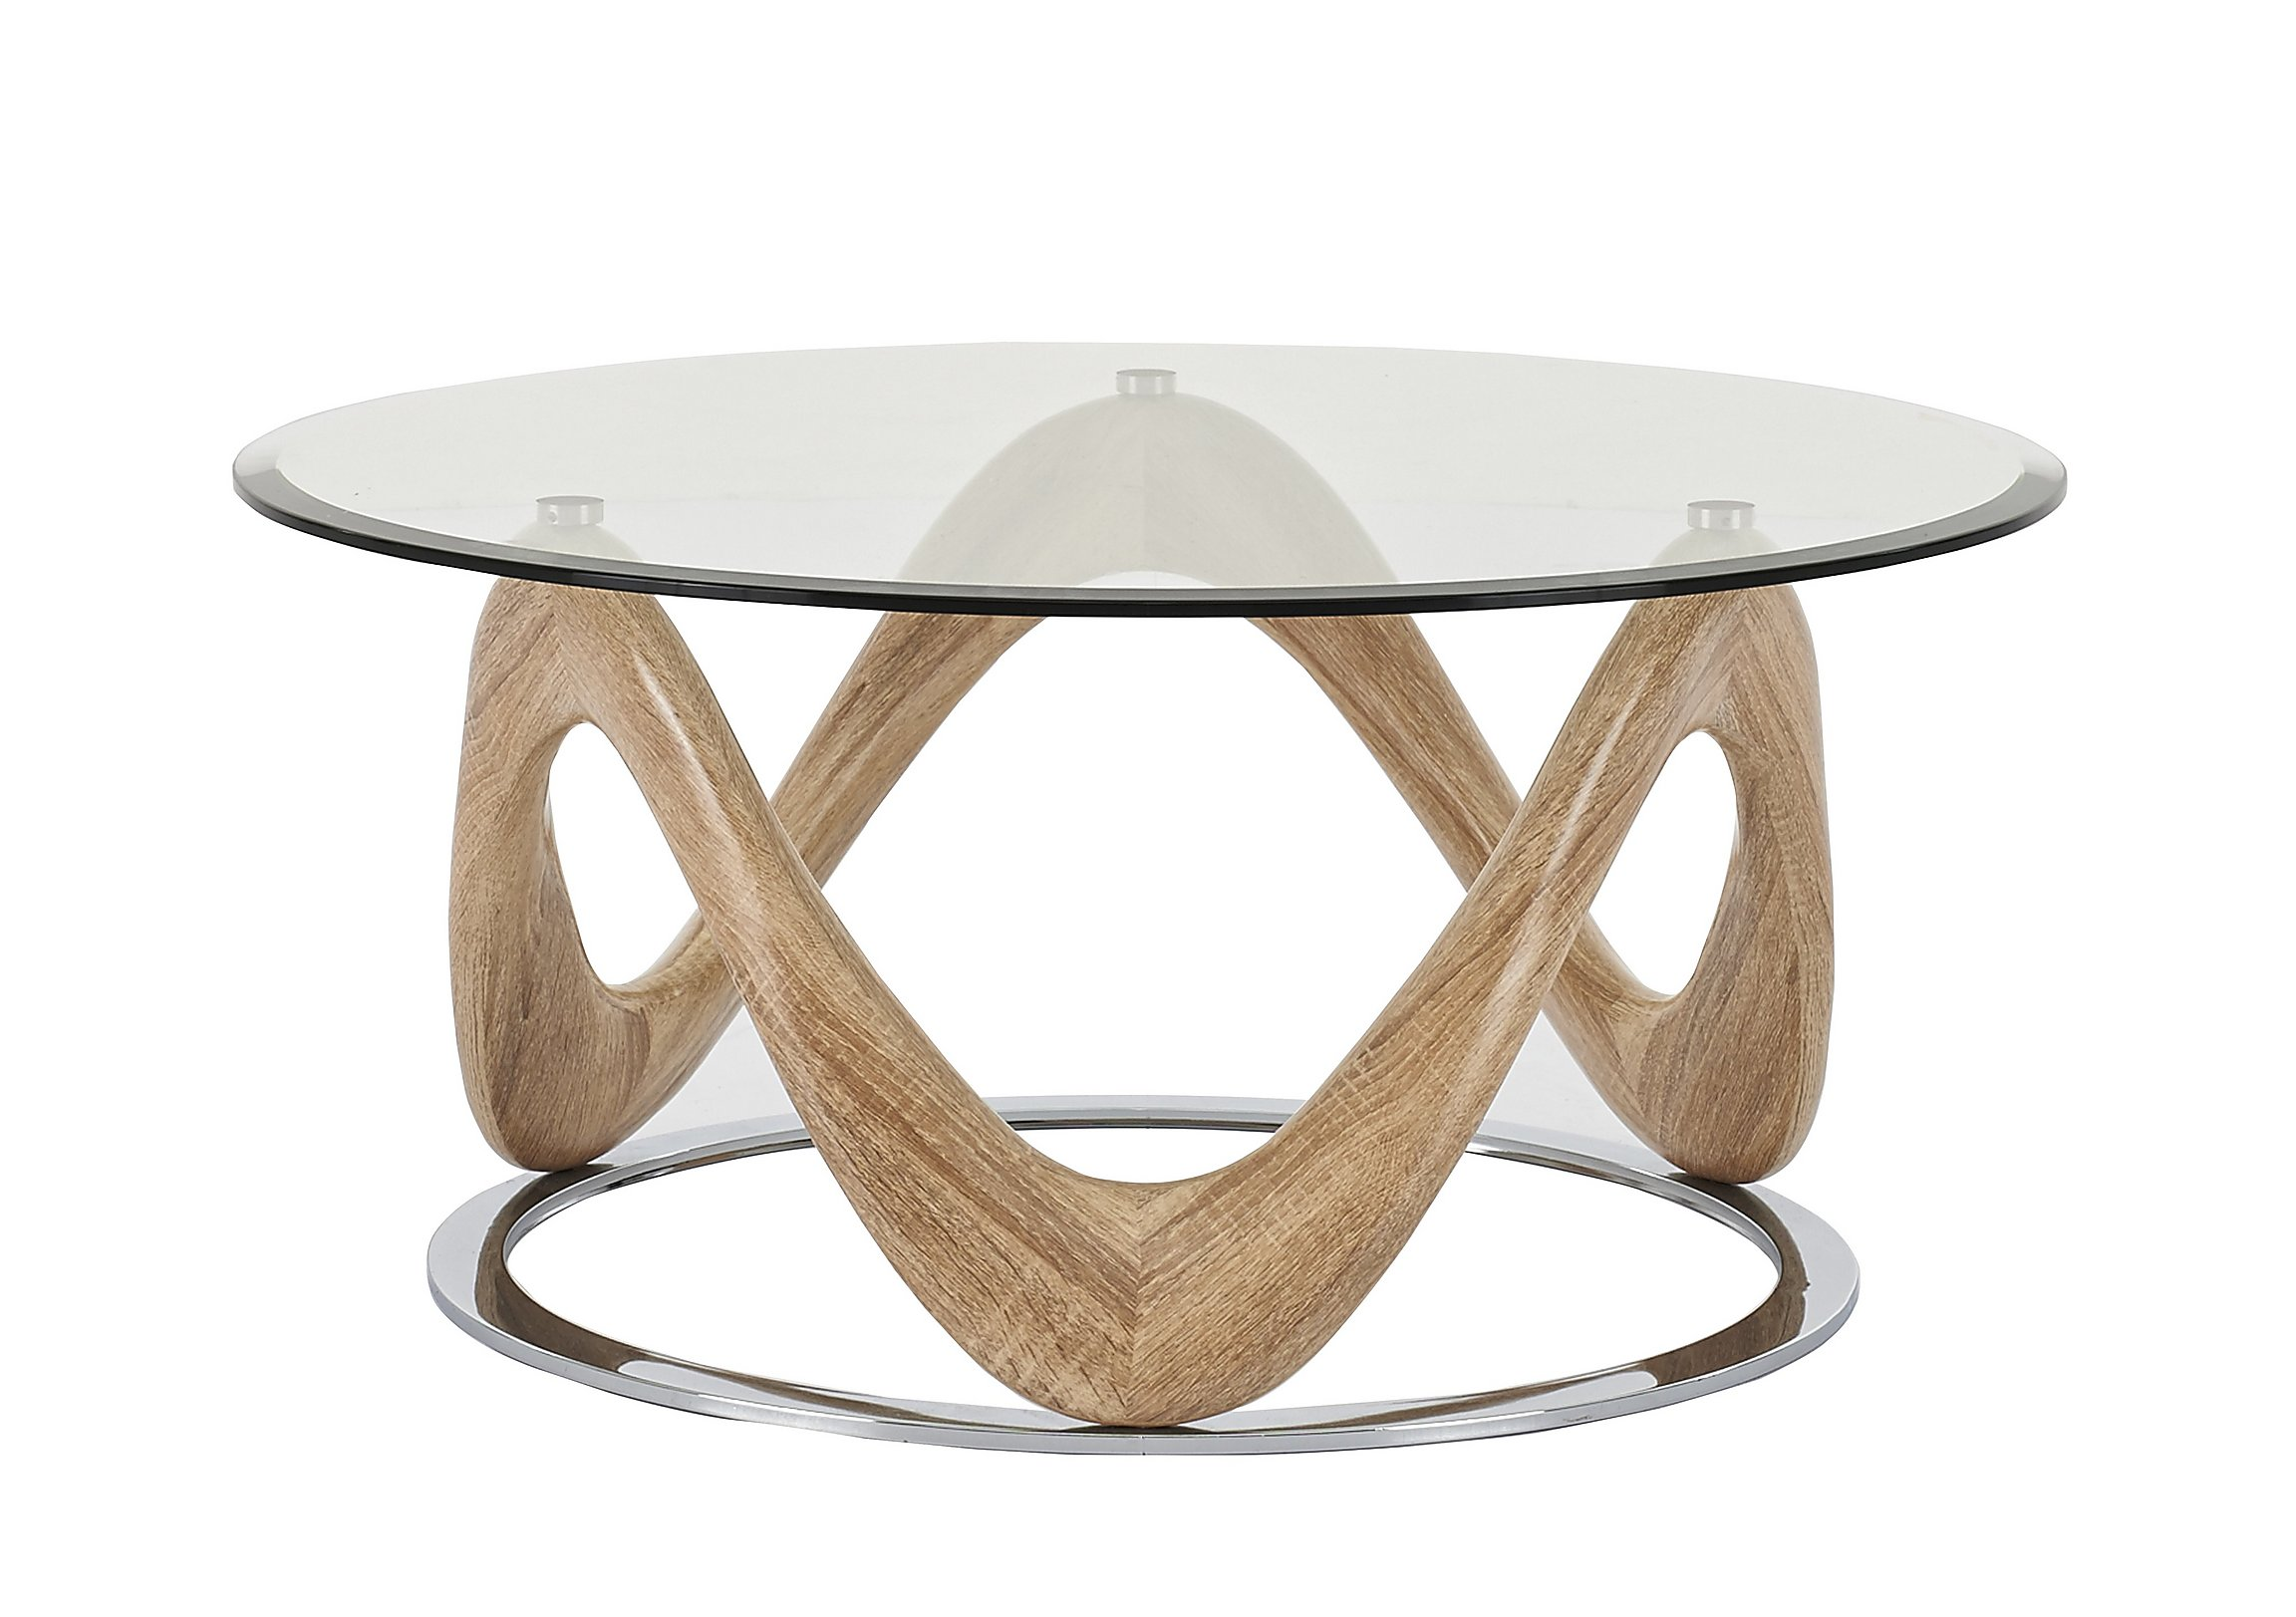 Save 110 Fuji Coffee Table Fuji Coffee Table